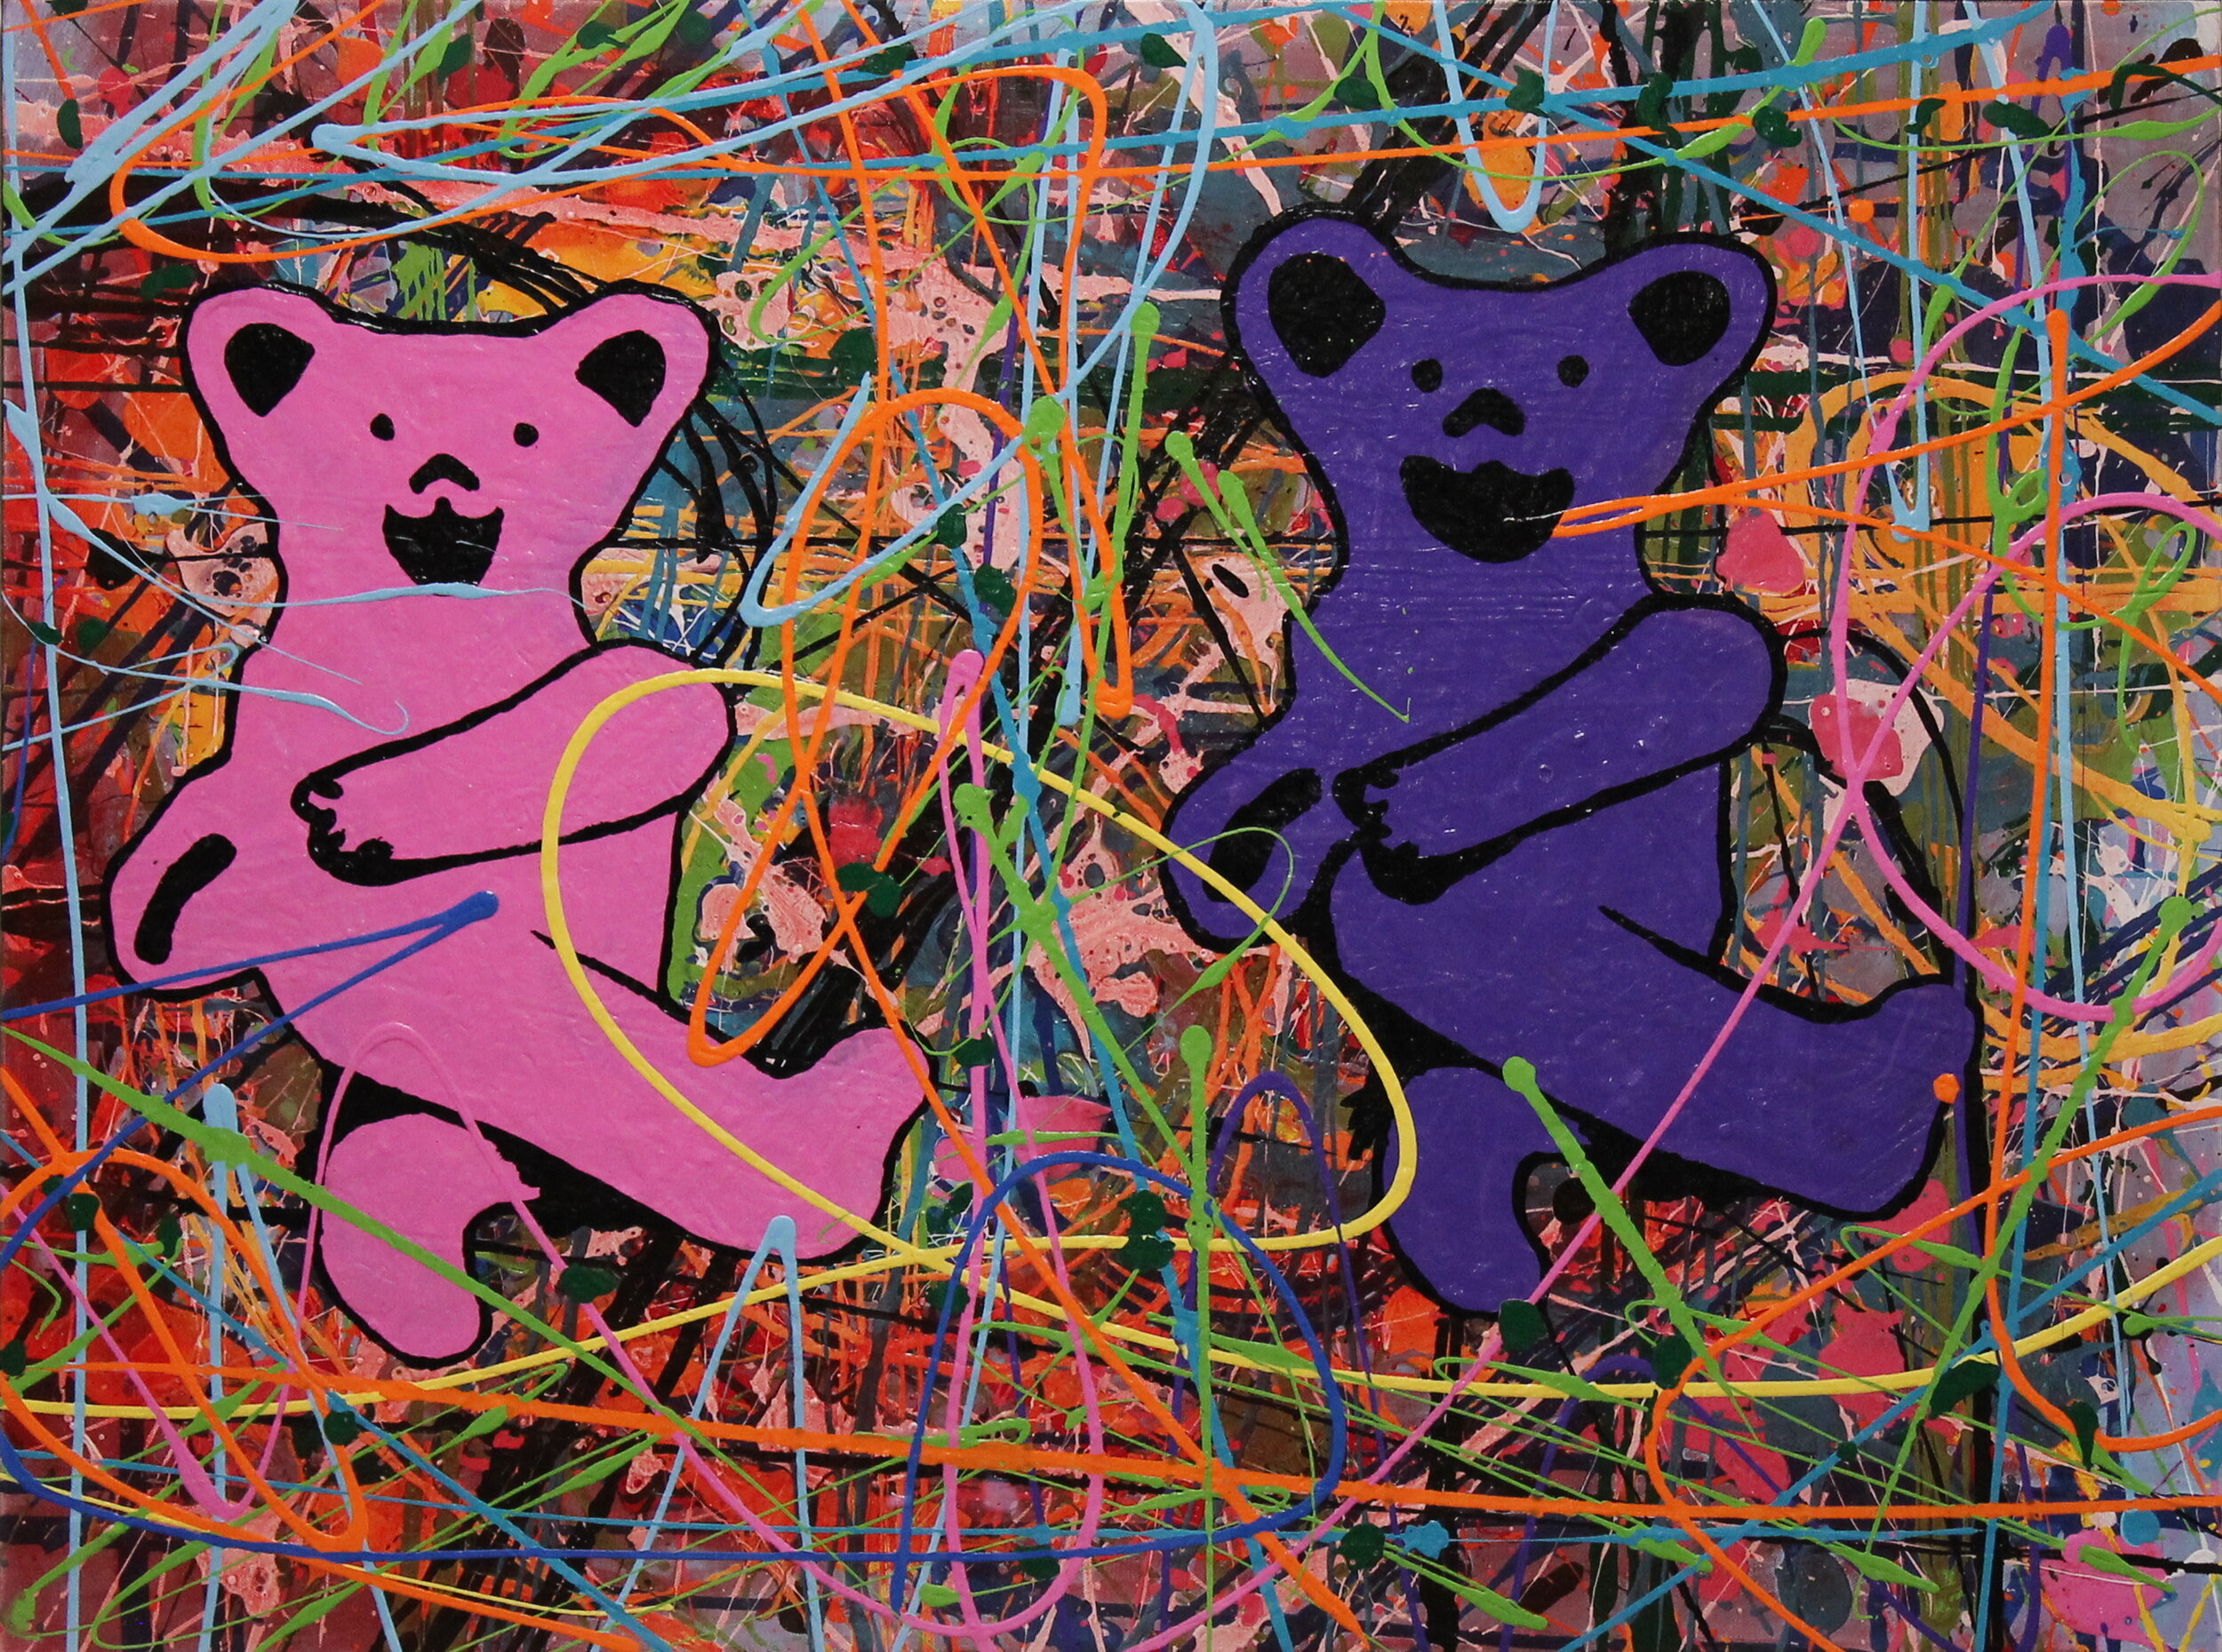 Matilda and Teddy, 30 x 40 inches